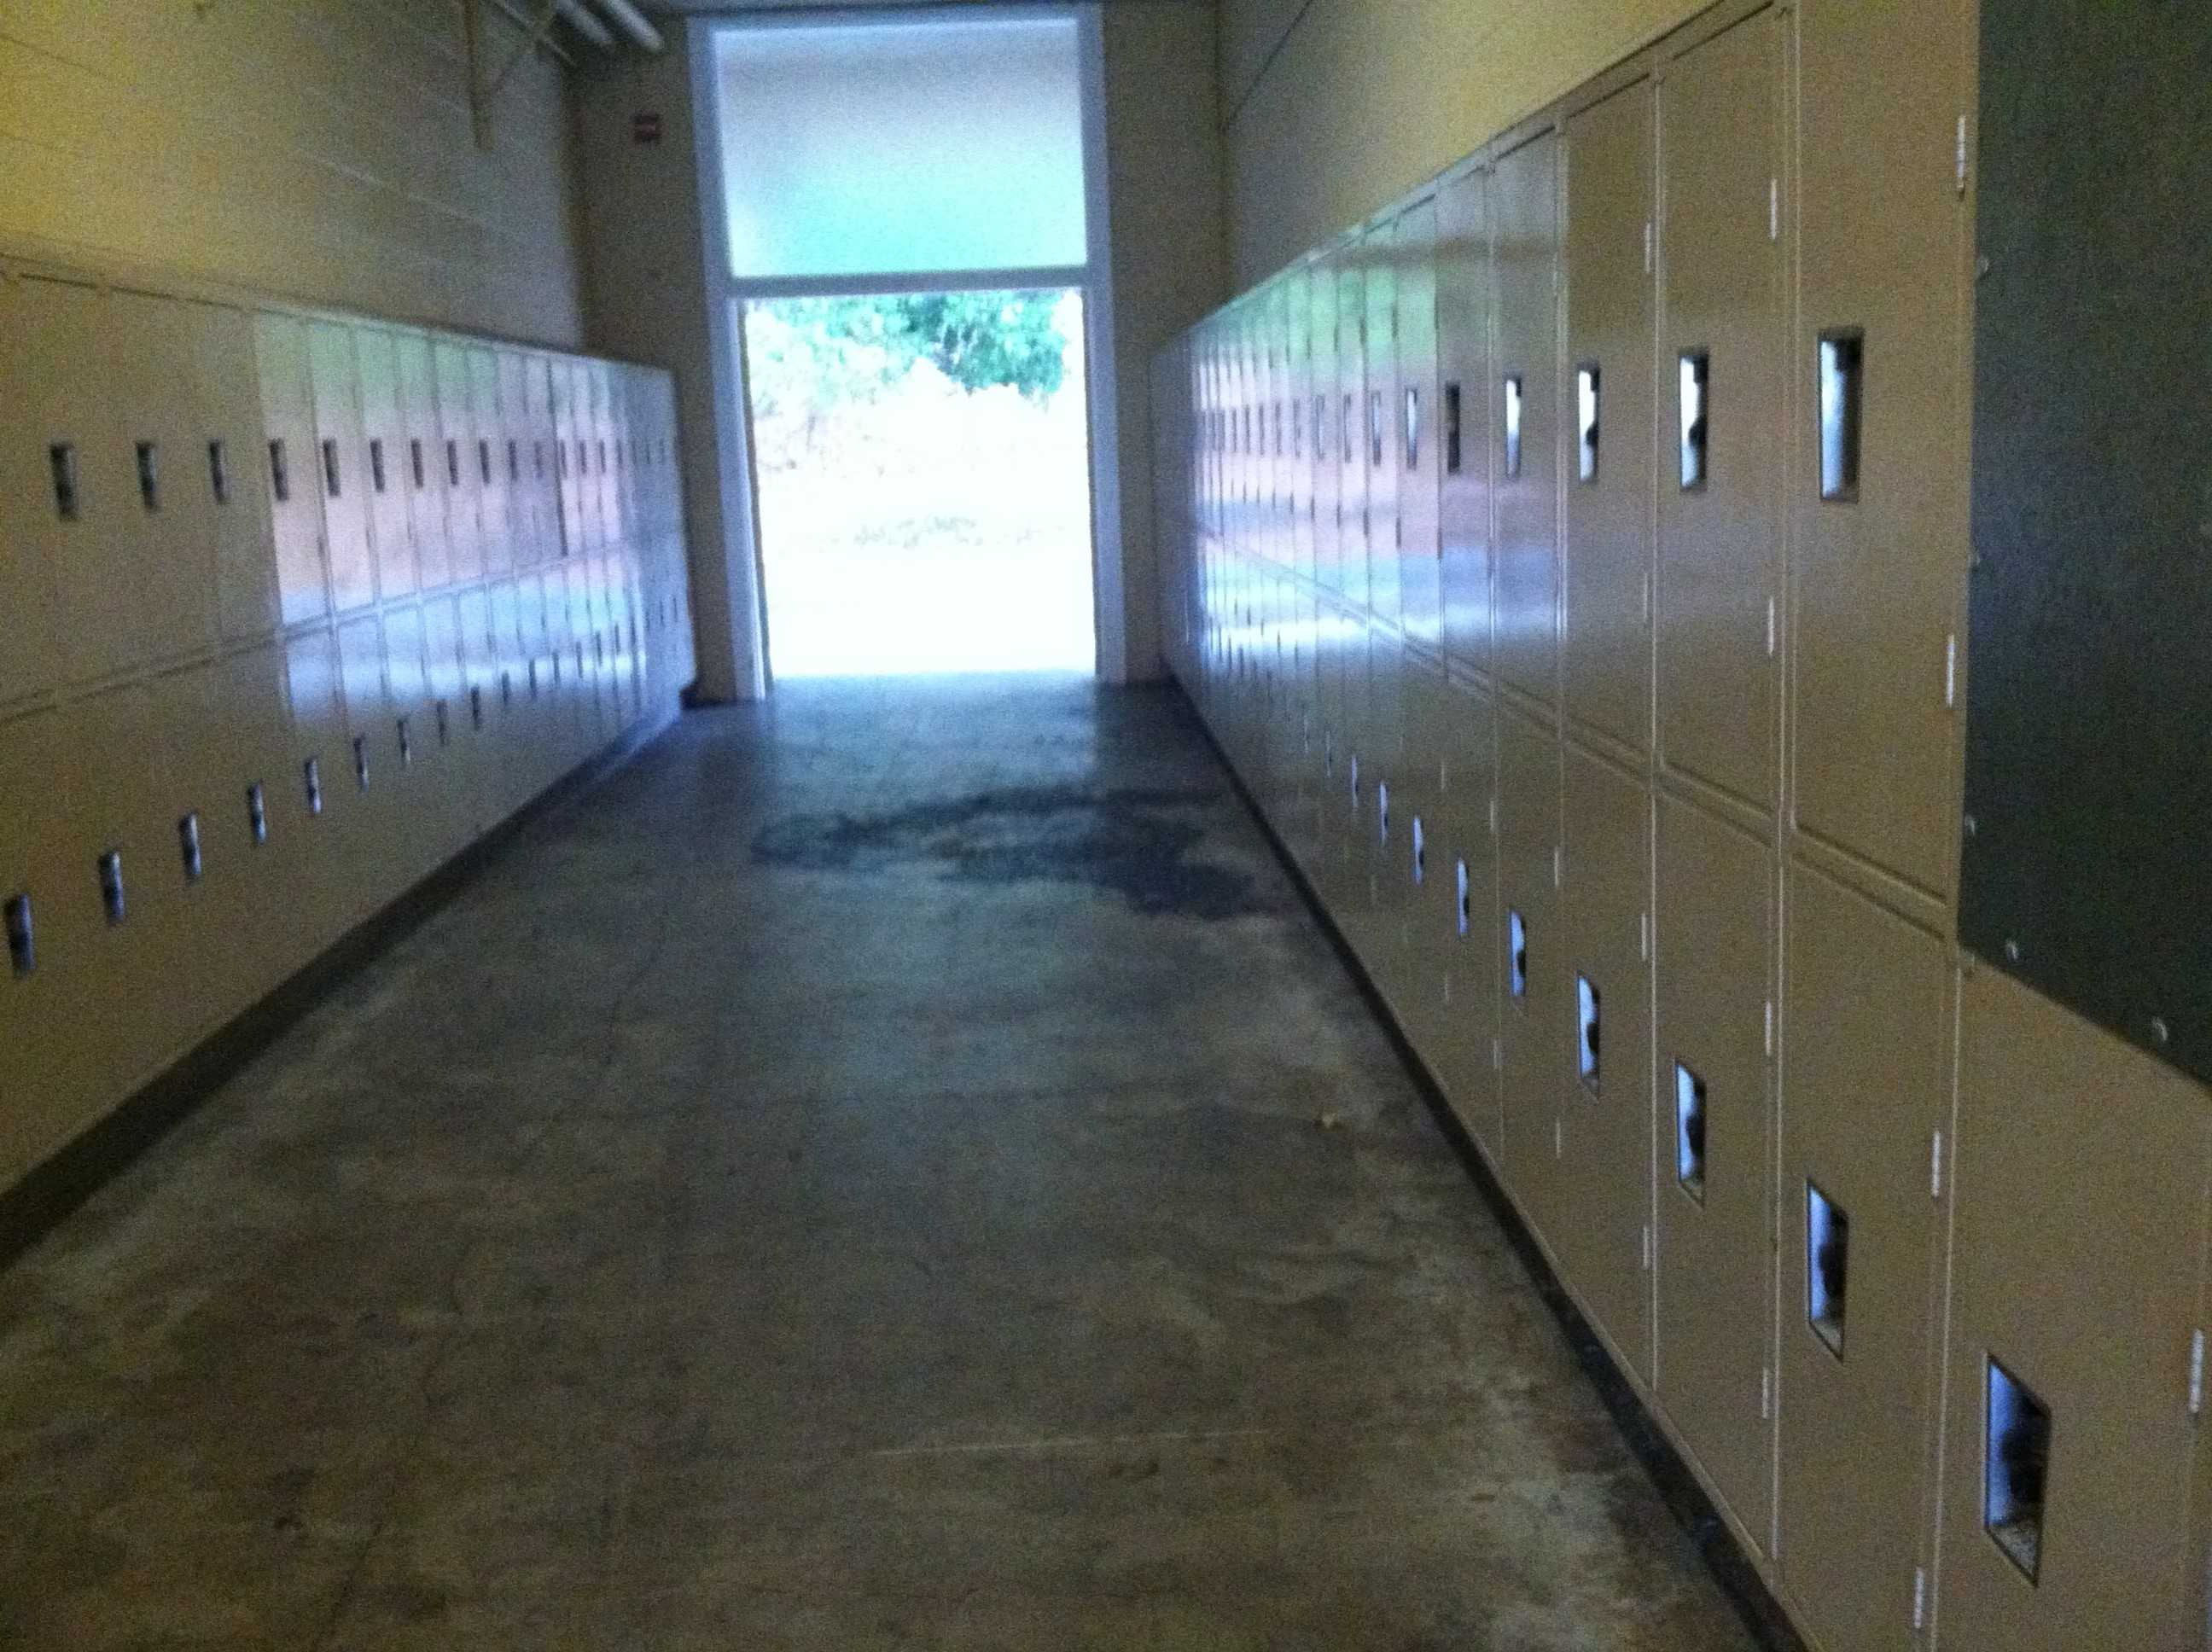 The T-hall lockers are far away from the main buildings, and students often do not use them.